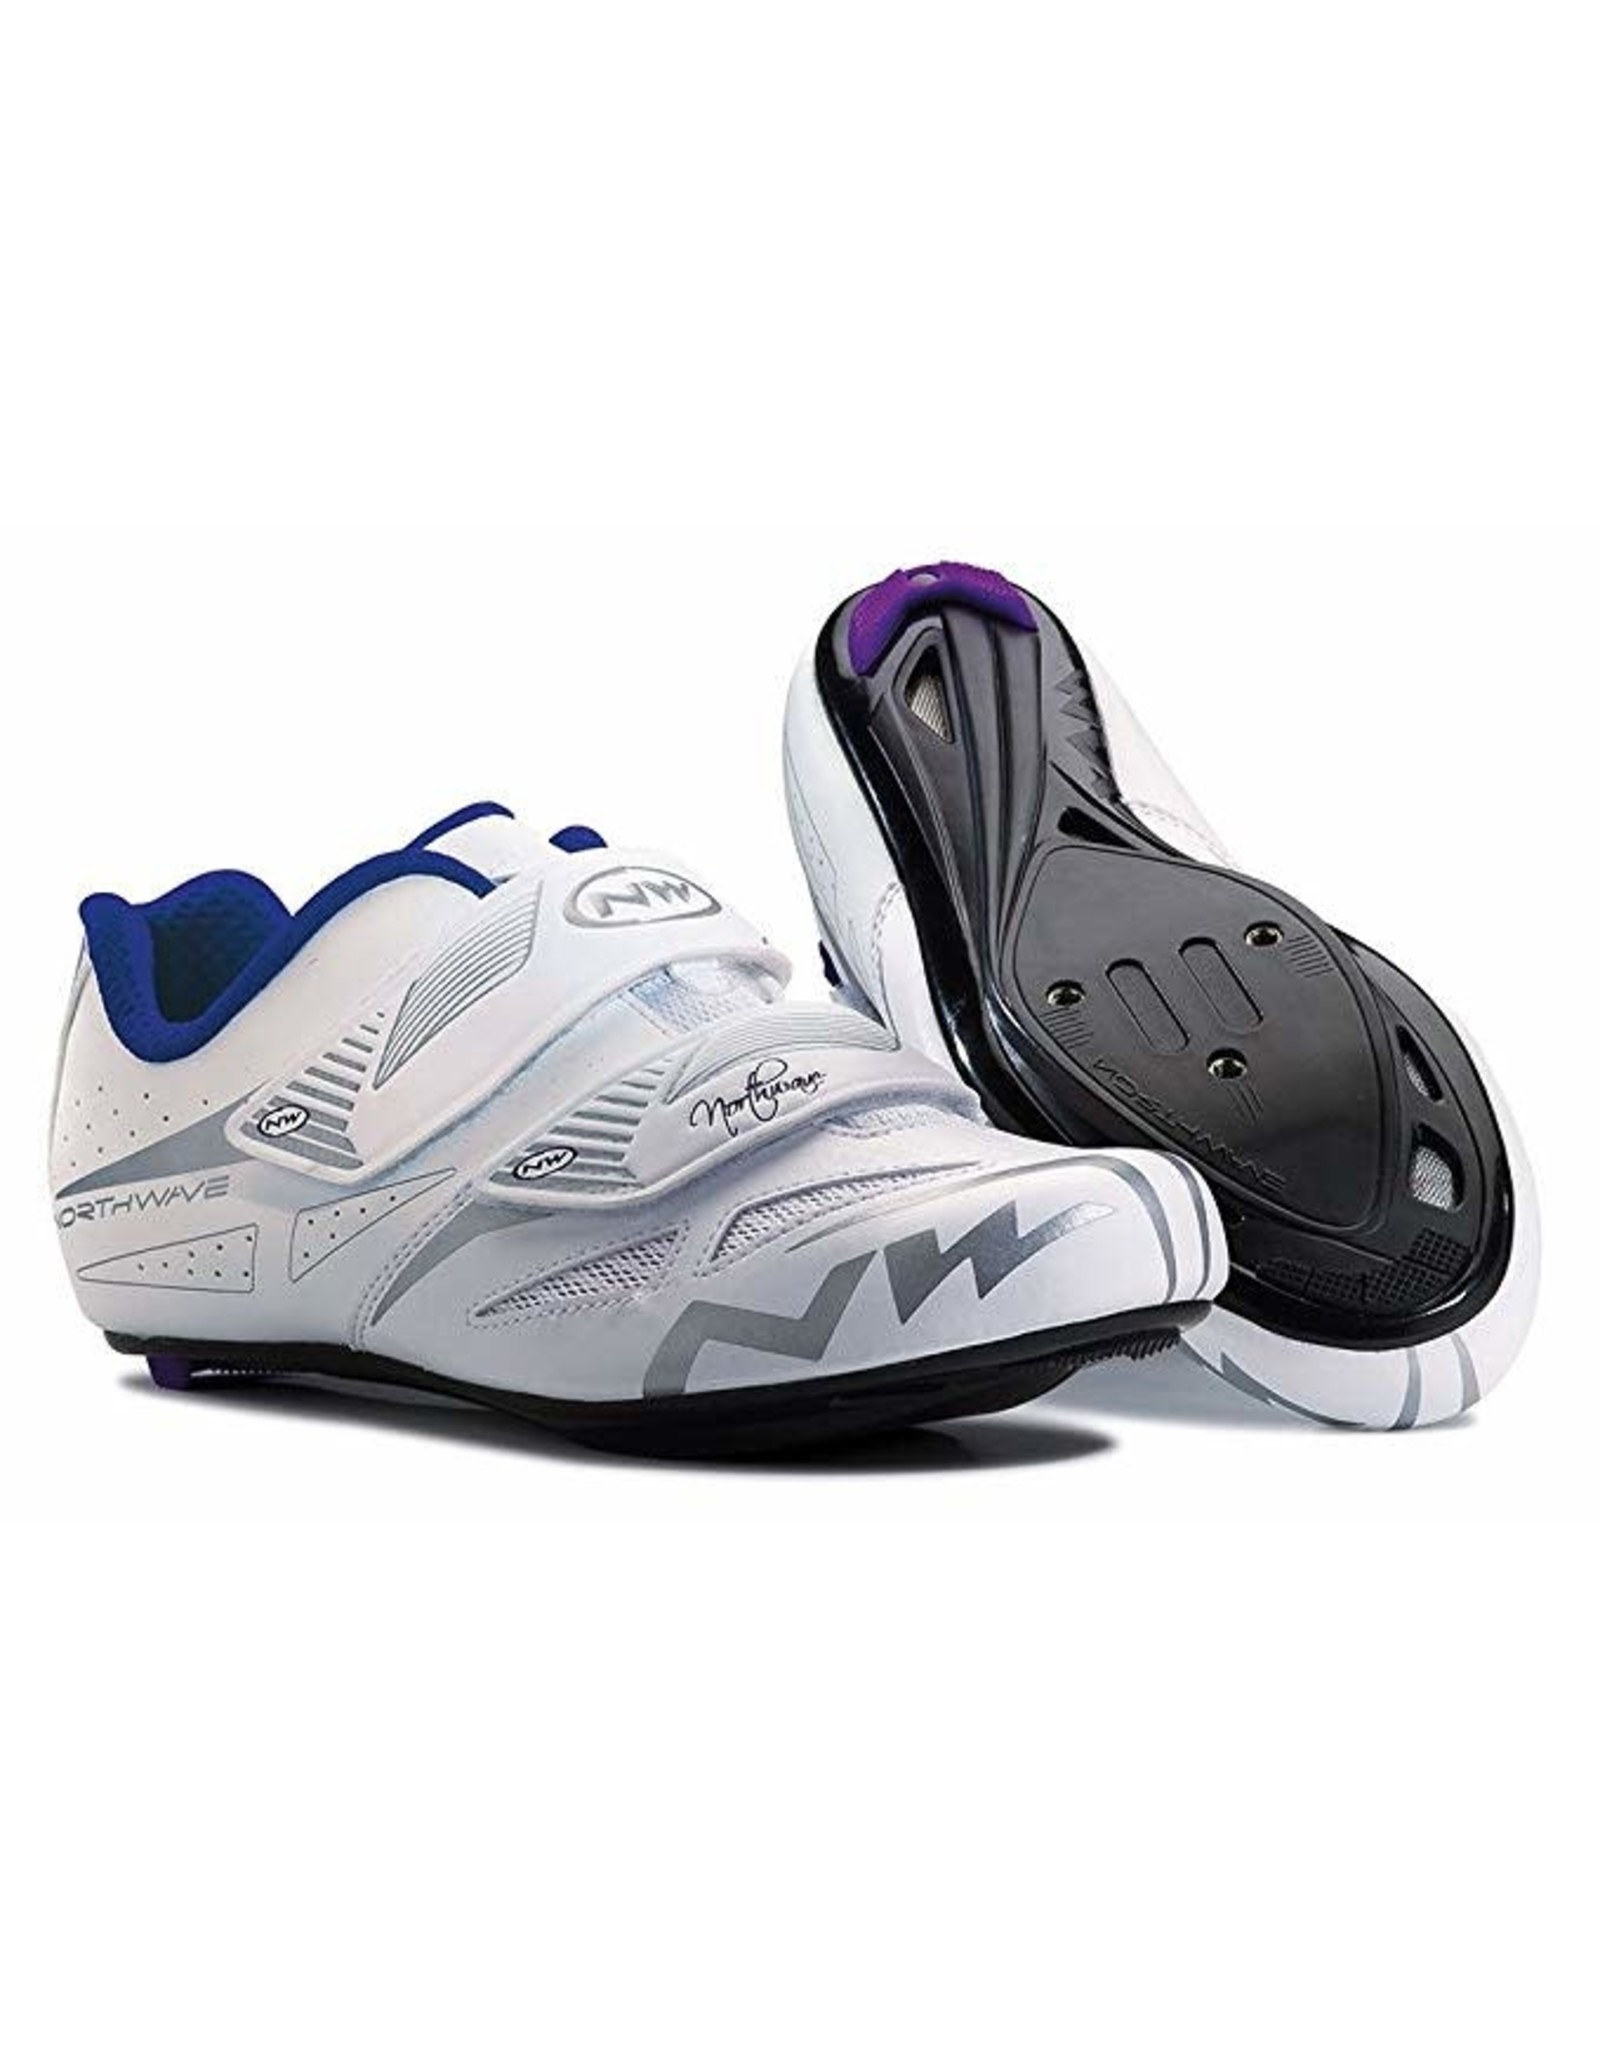 Northwave Eclipse Evo Womens Road Cycling Shoe  (New Old Stock) White/Gray 41